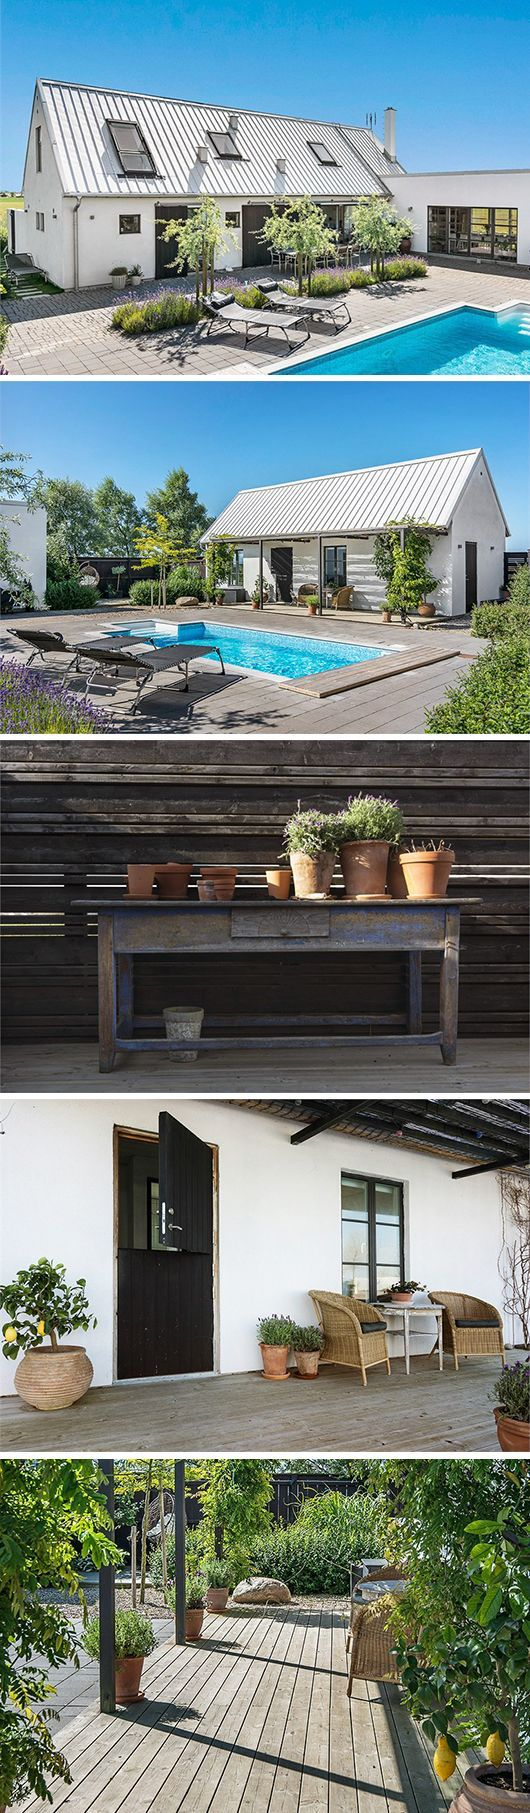 Metal roof, terra cotta planters